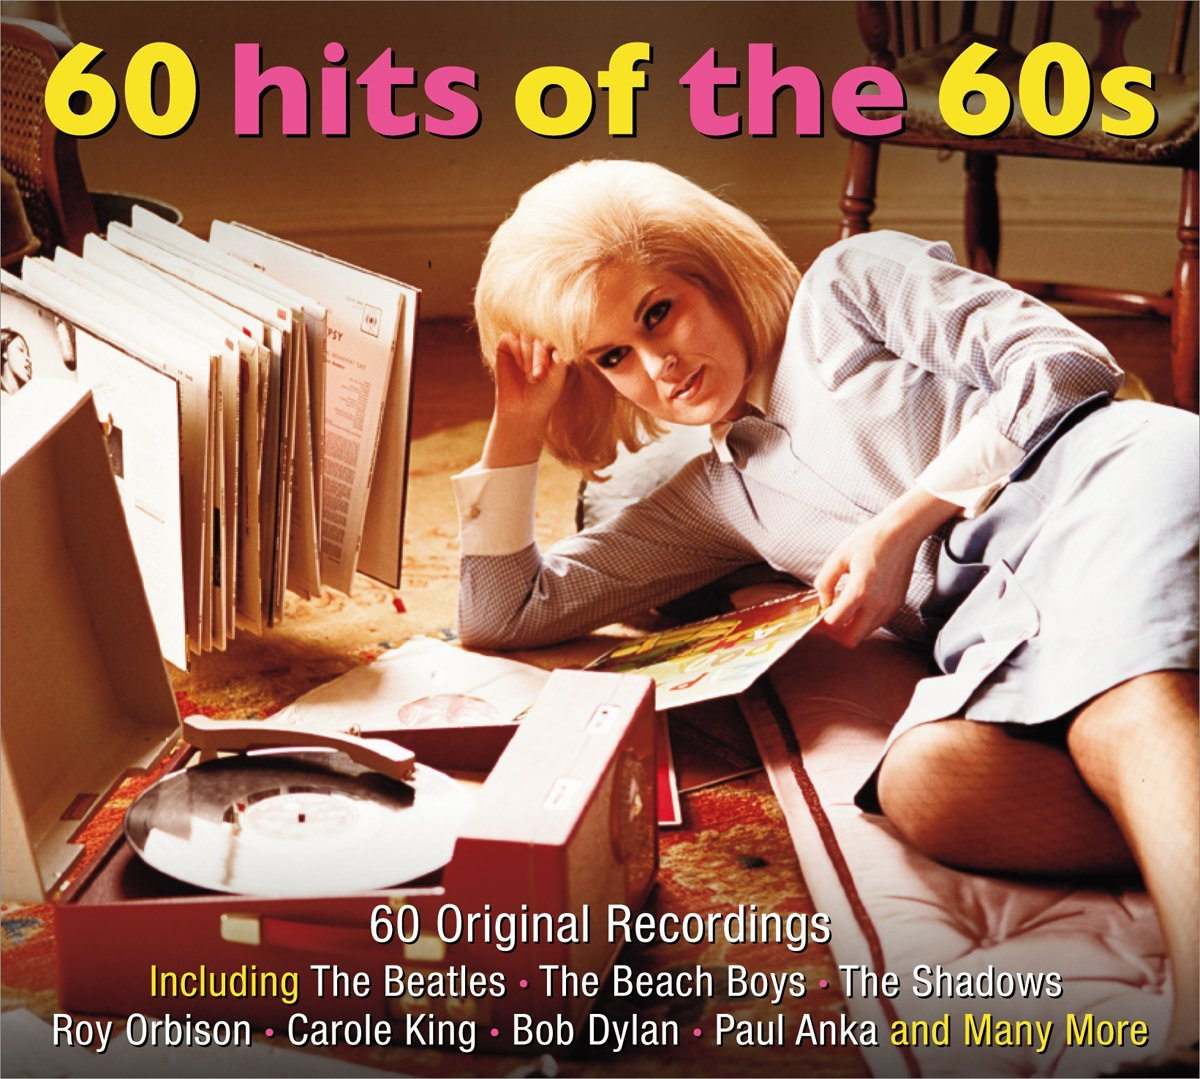 """60 Hits Of The 60's"" Ben E. King, Carole King, Dion, Johnny Preston, Ray Charles, Ricky Nelson, Roy Orbison, Sam Cooke, The Beatles, The Everly Brothers, The Four Seasons, The Shirelles"